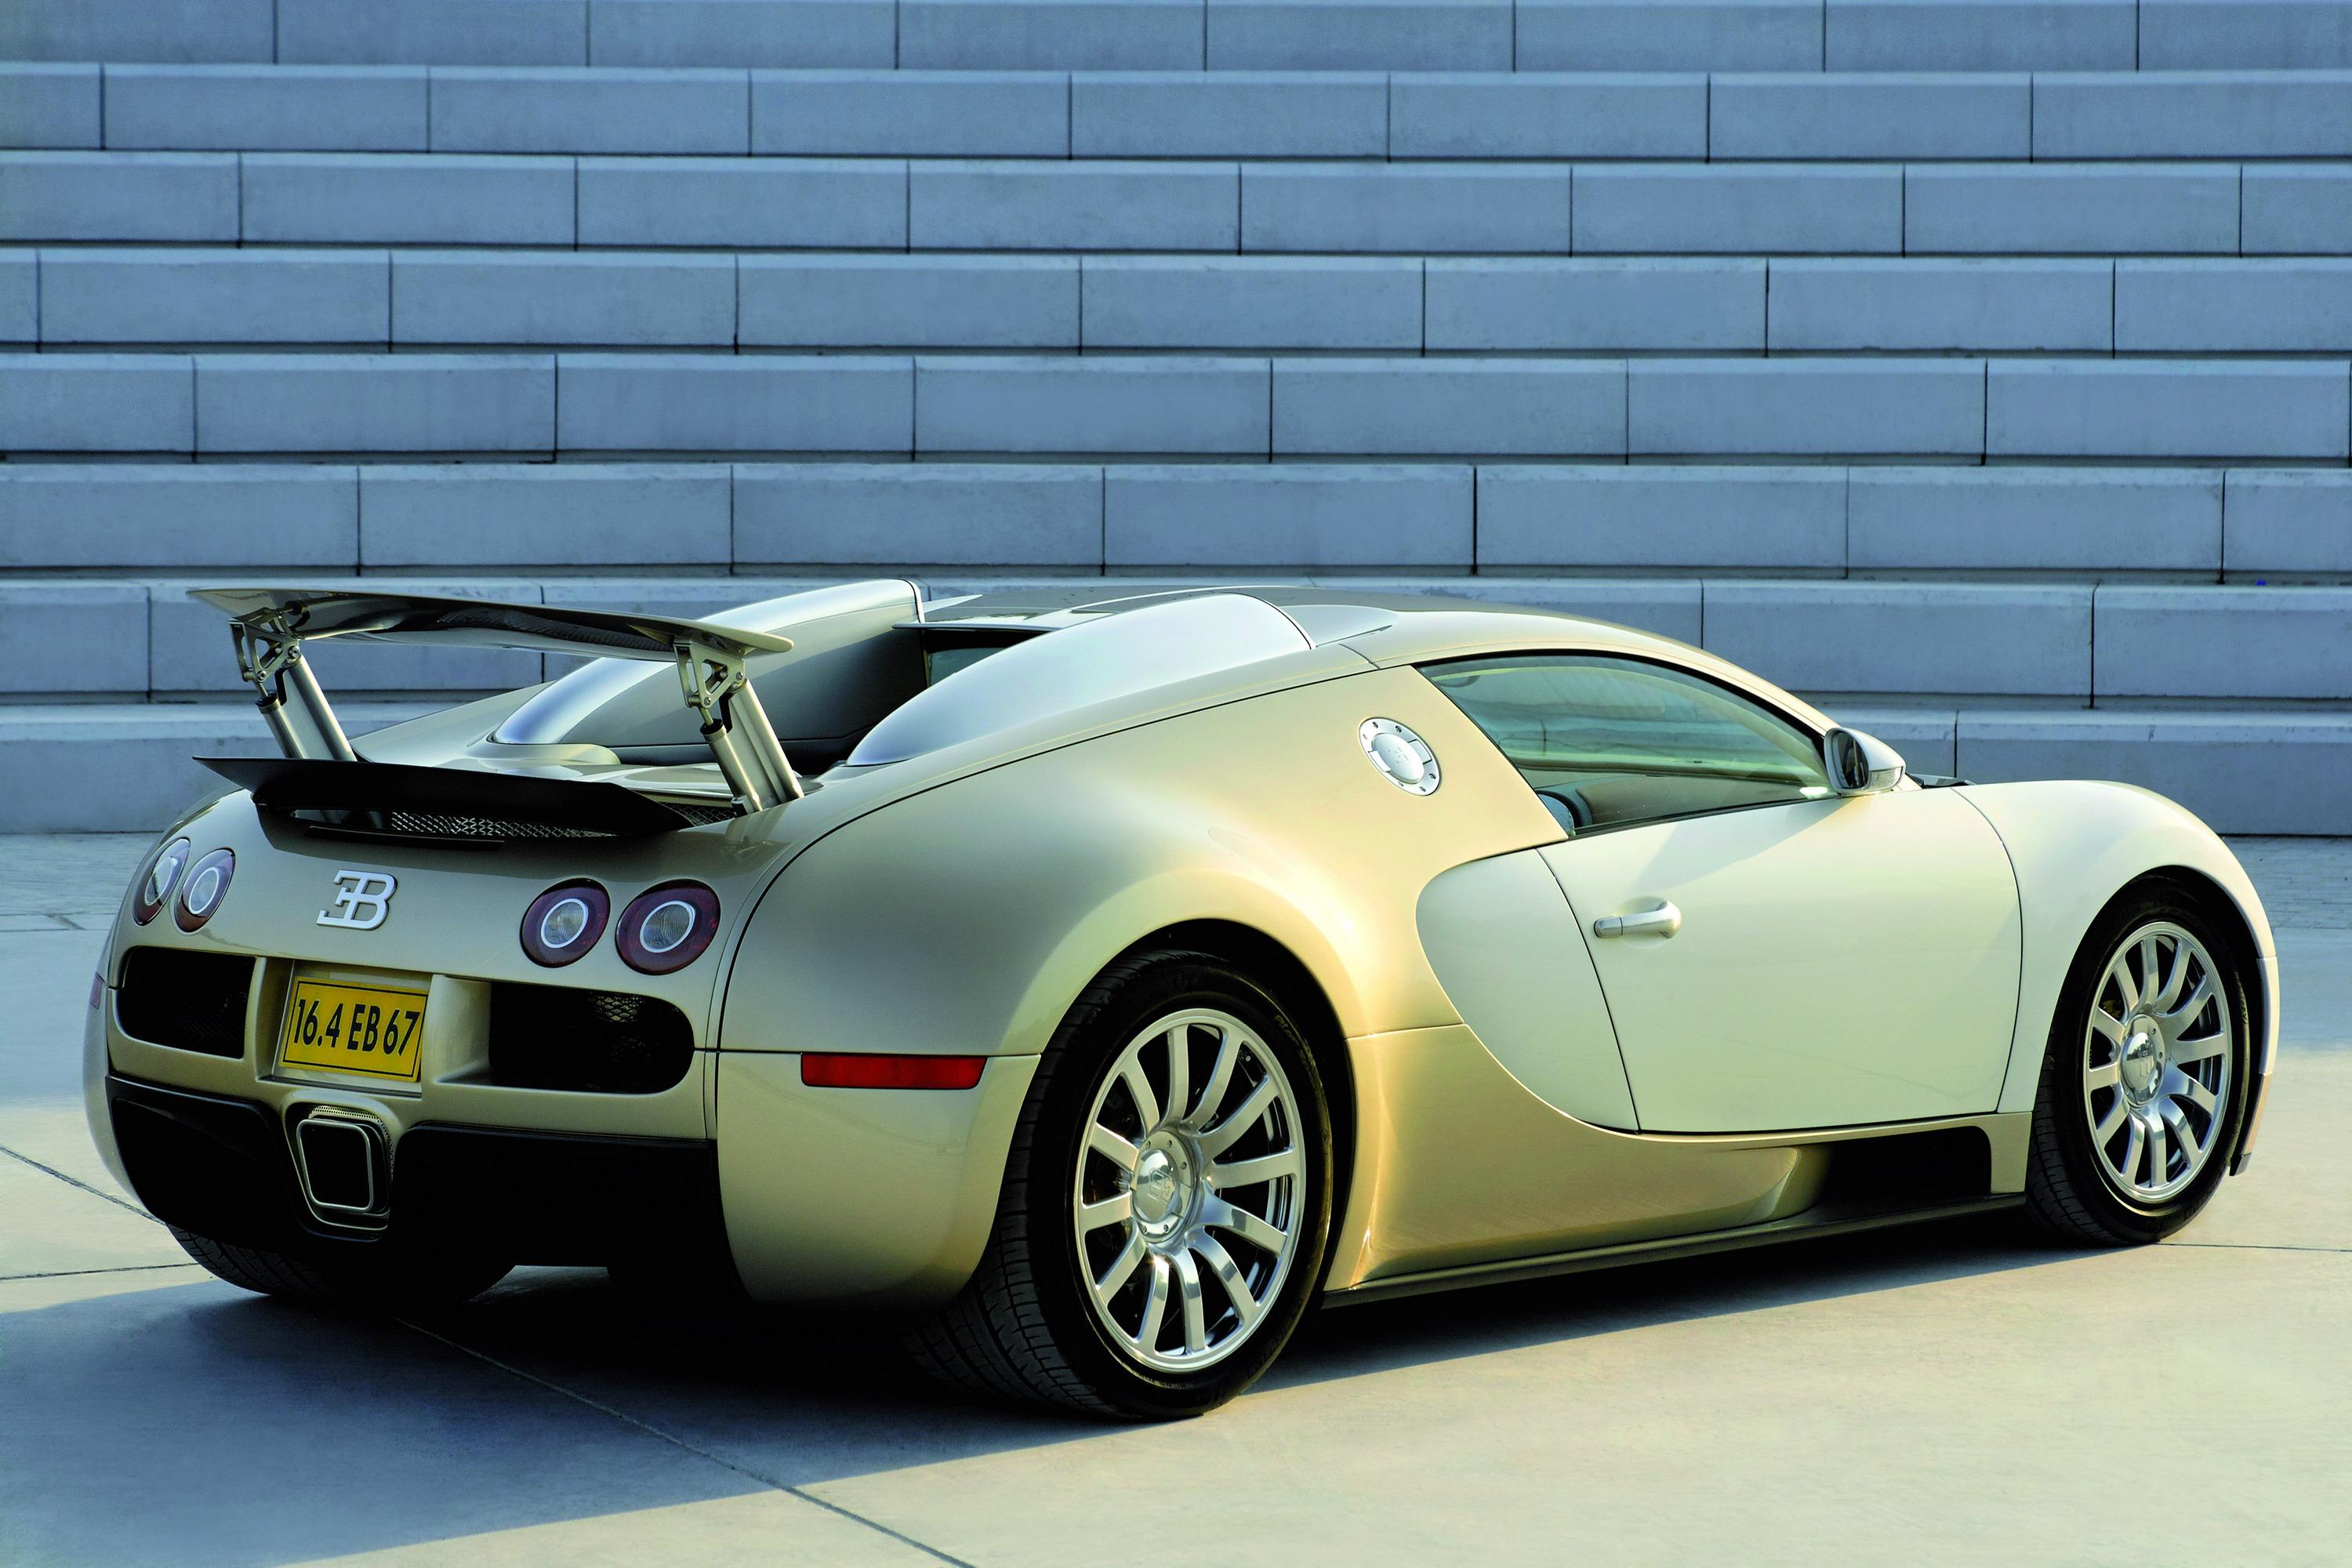 How fast does a bugatti go from 0 to 60